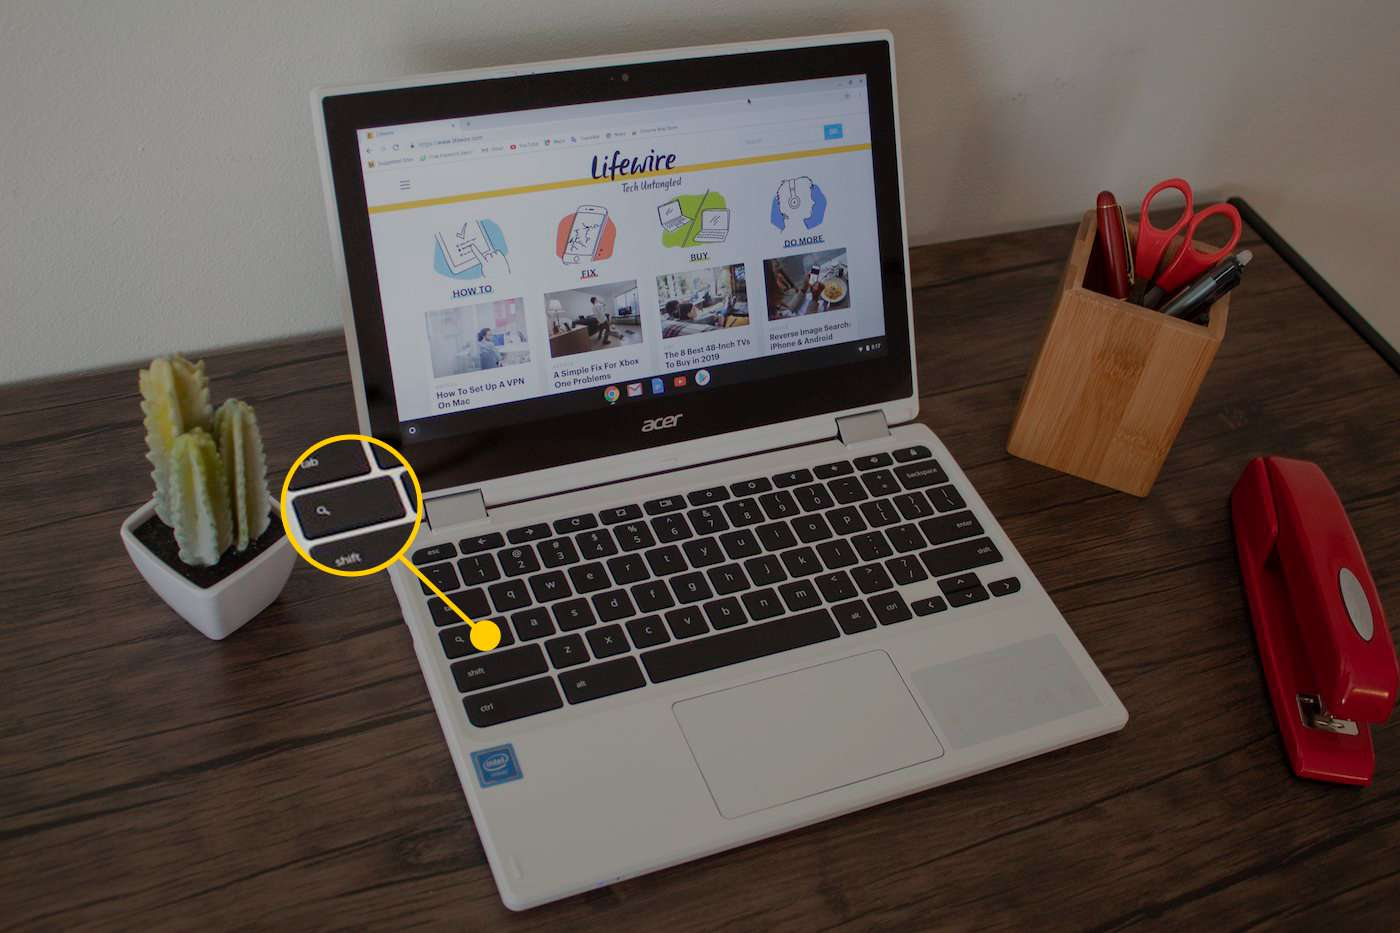 The search key on the Chromebook keyboard.